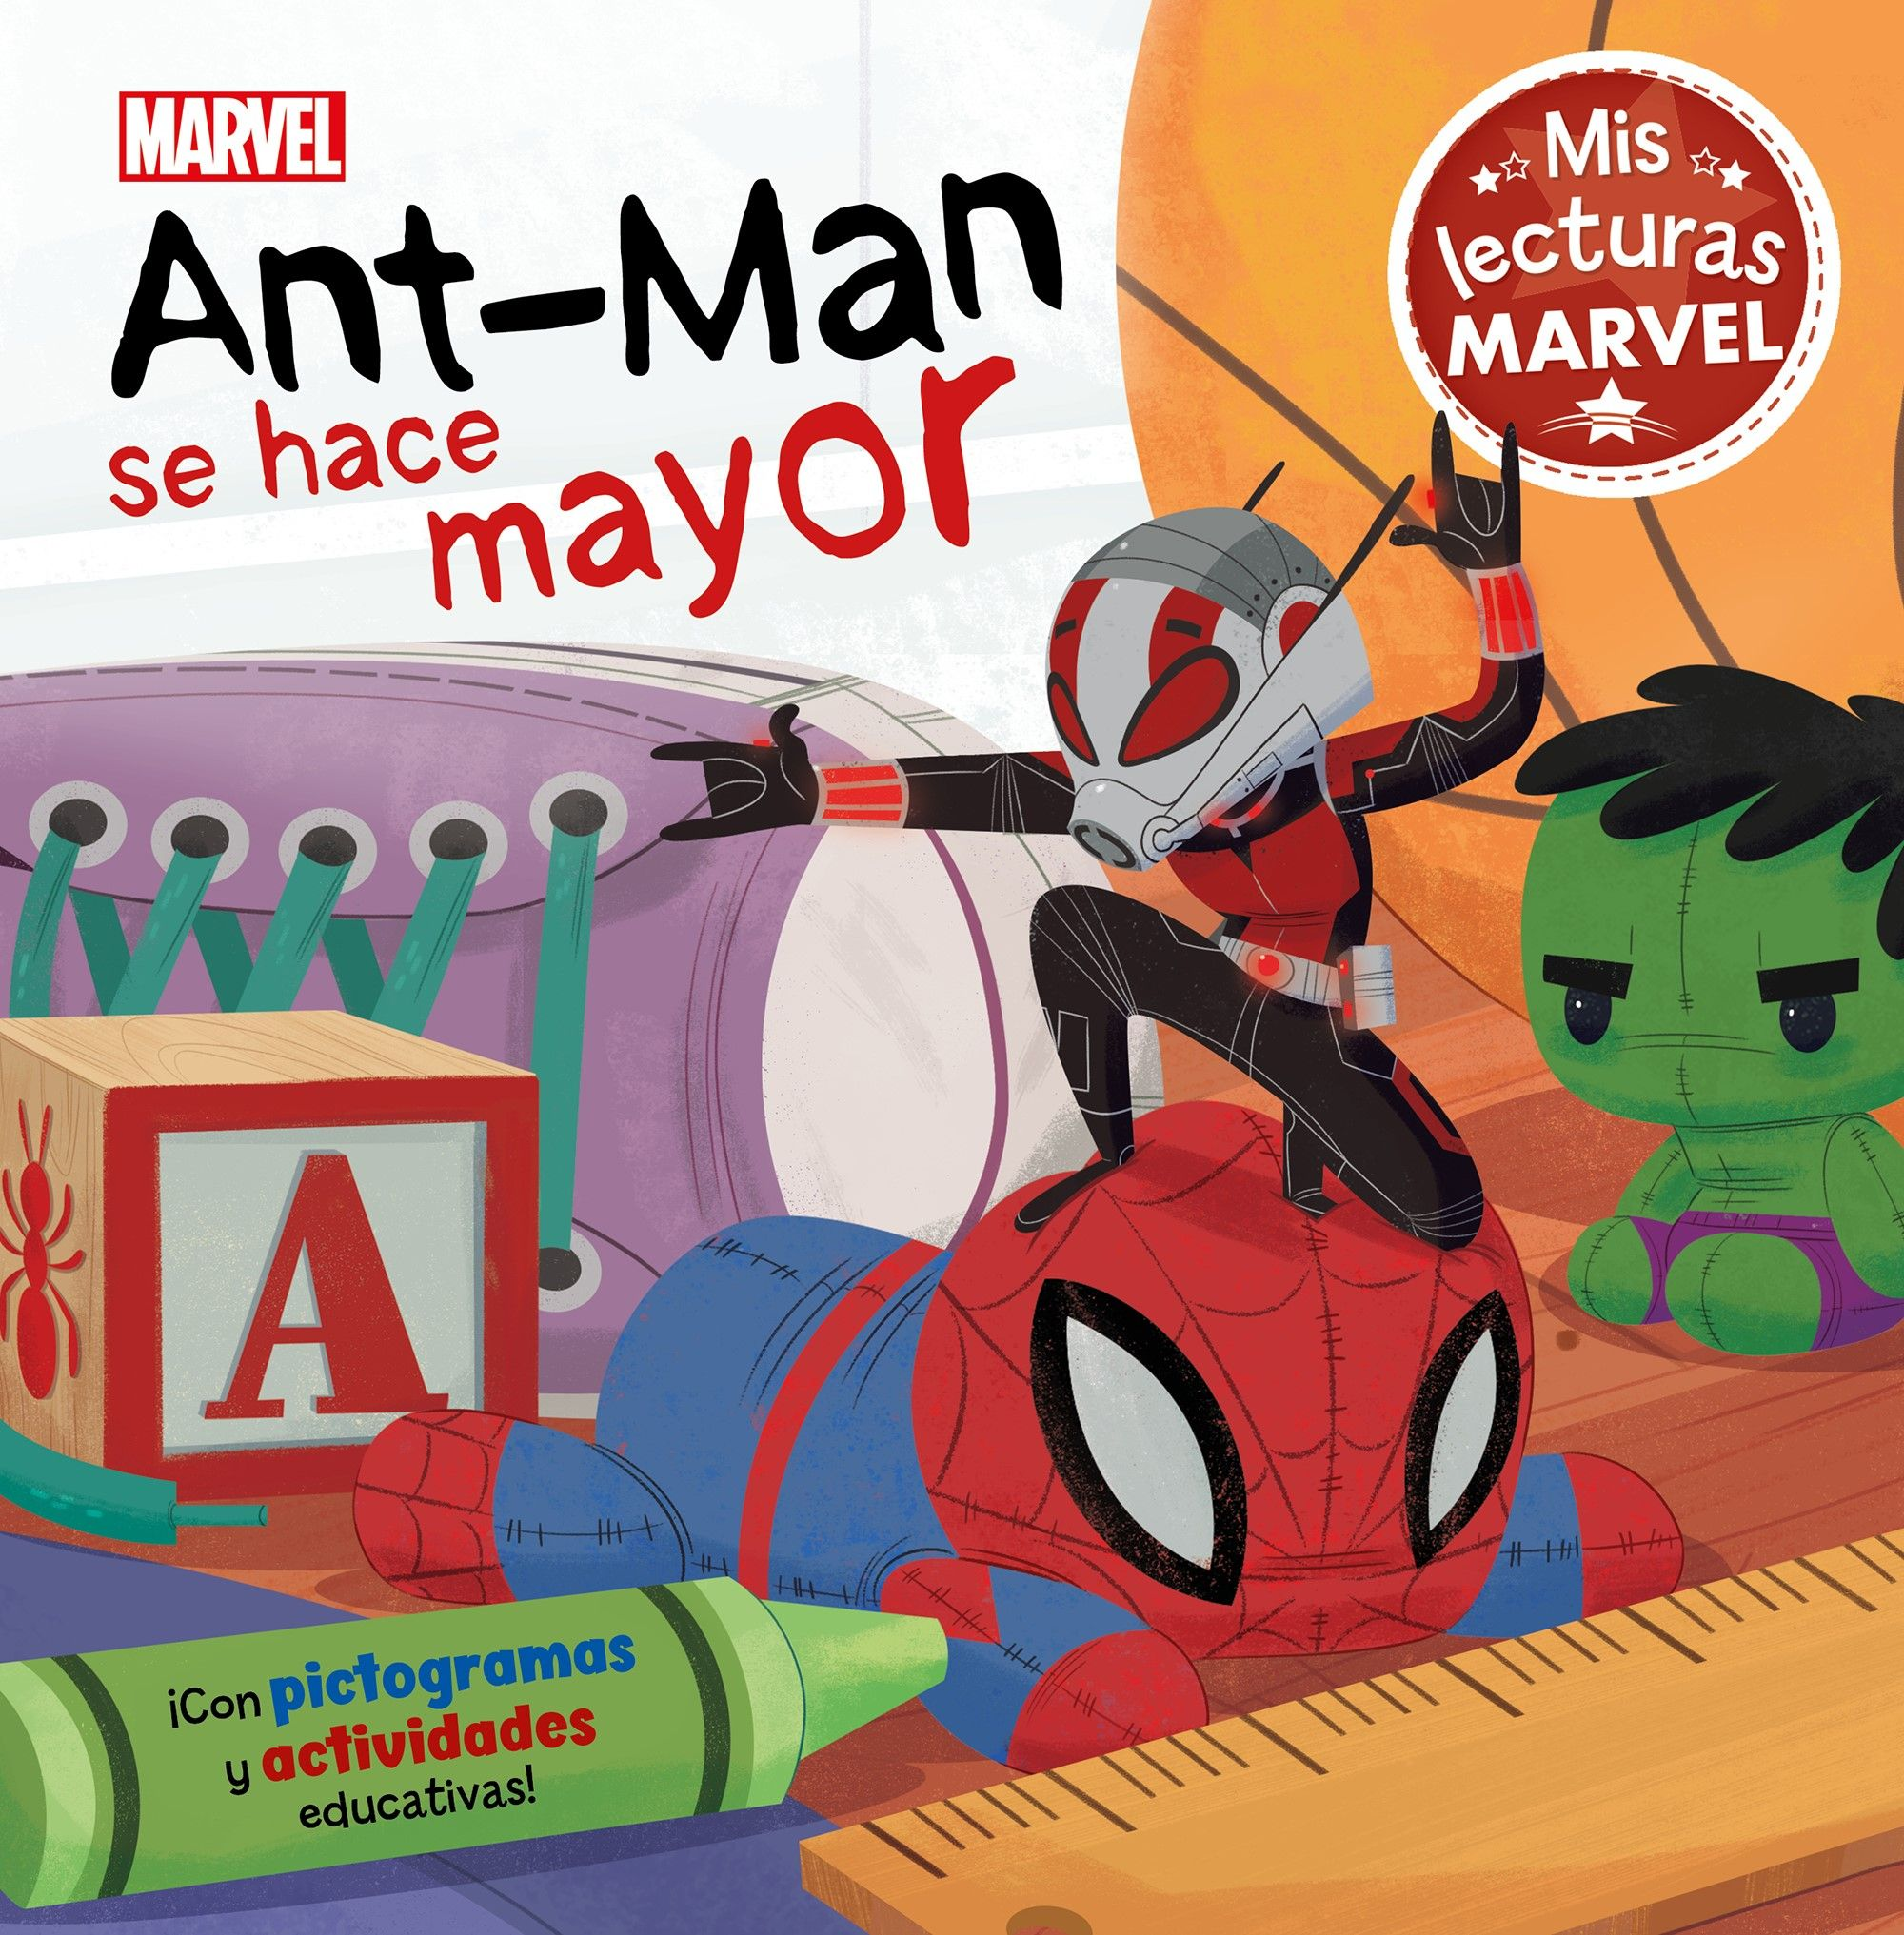 ANT MAN SE HACE MAYOR MIS LECTURAS MARVEL